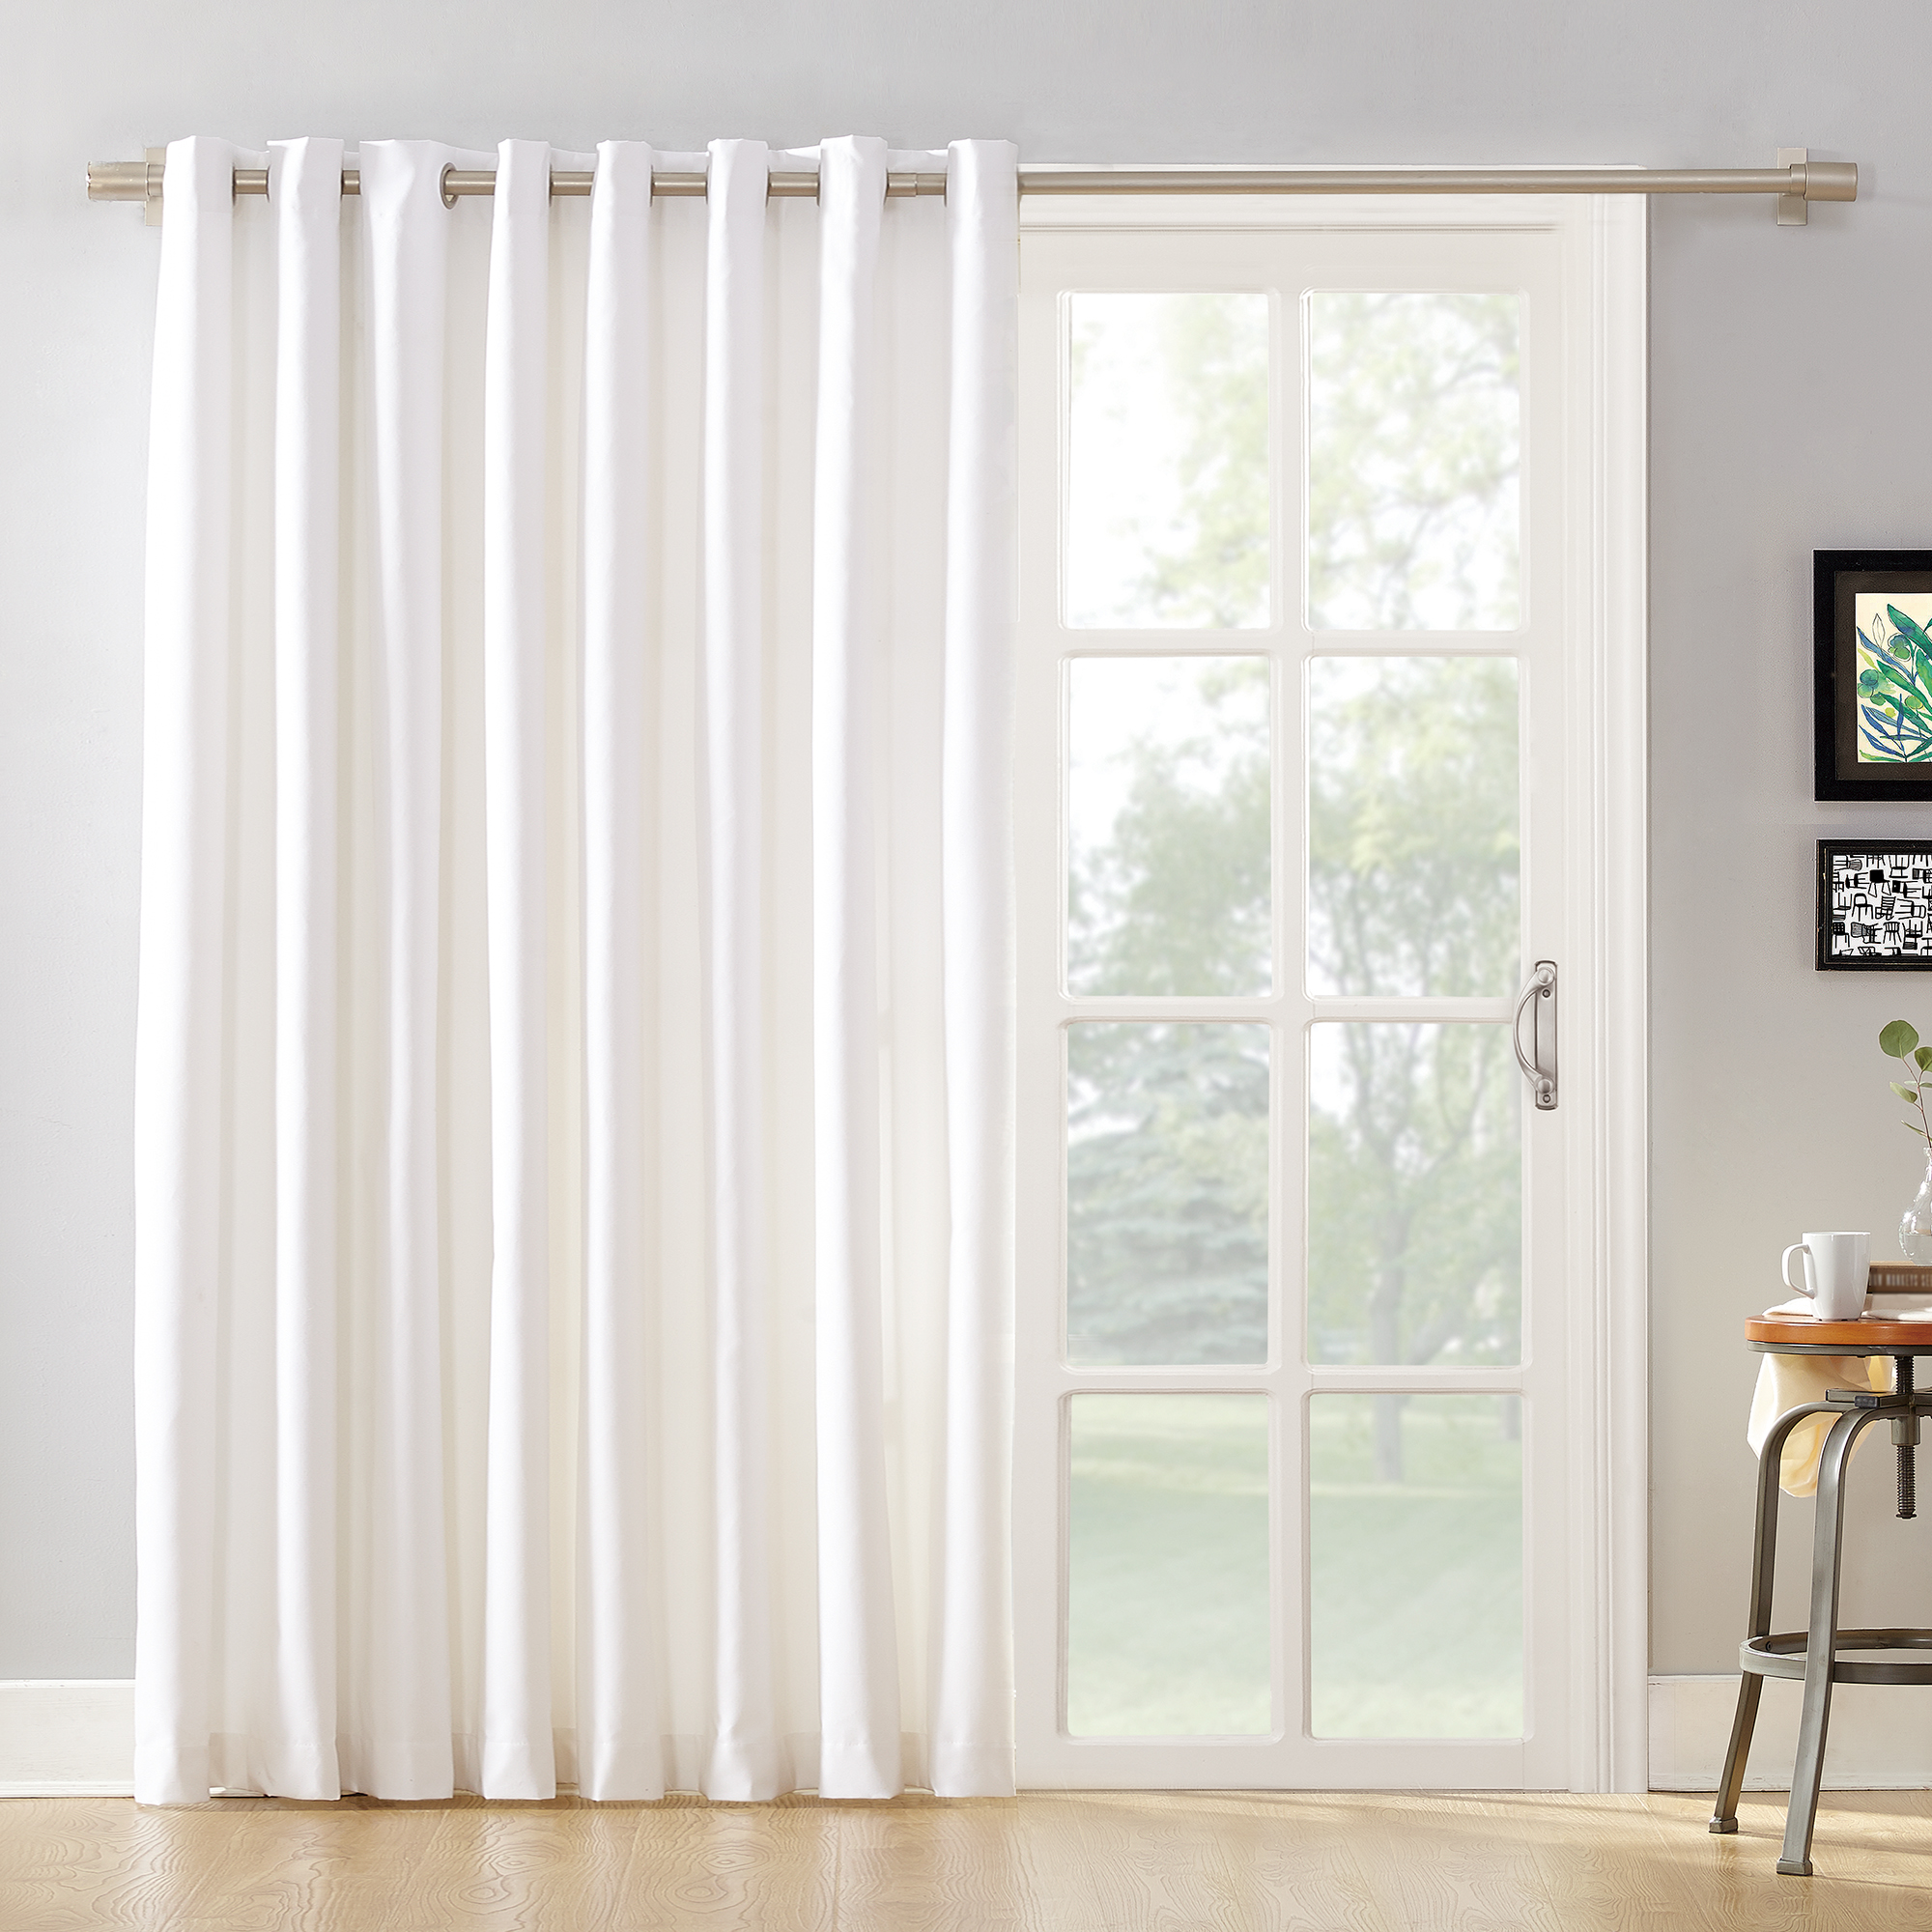 Mainstays Sliding Glass Door Thermal Lined Room Darkening Grommet Curtain Panel Walmart Com Walmart Com